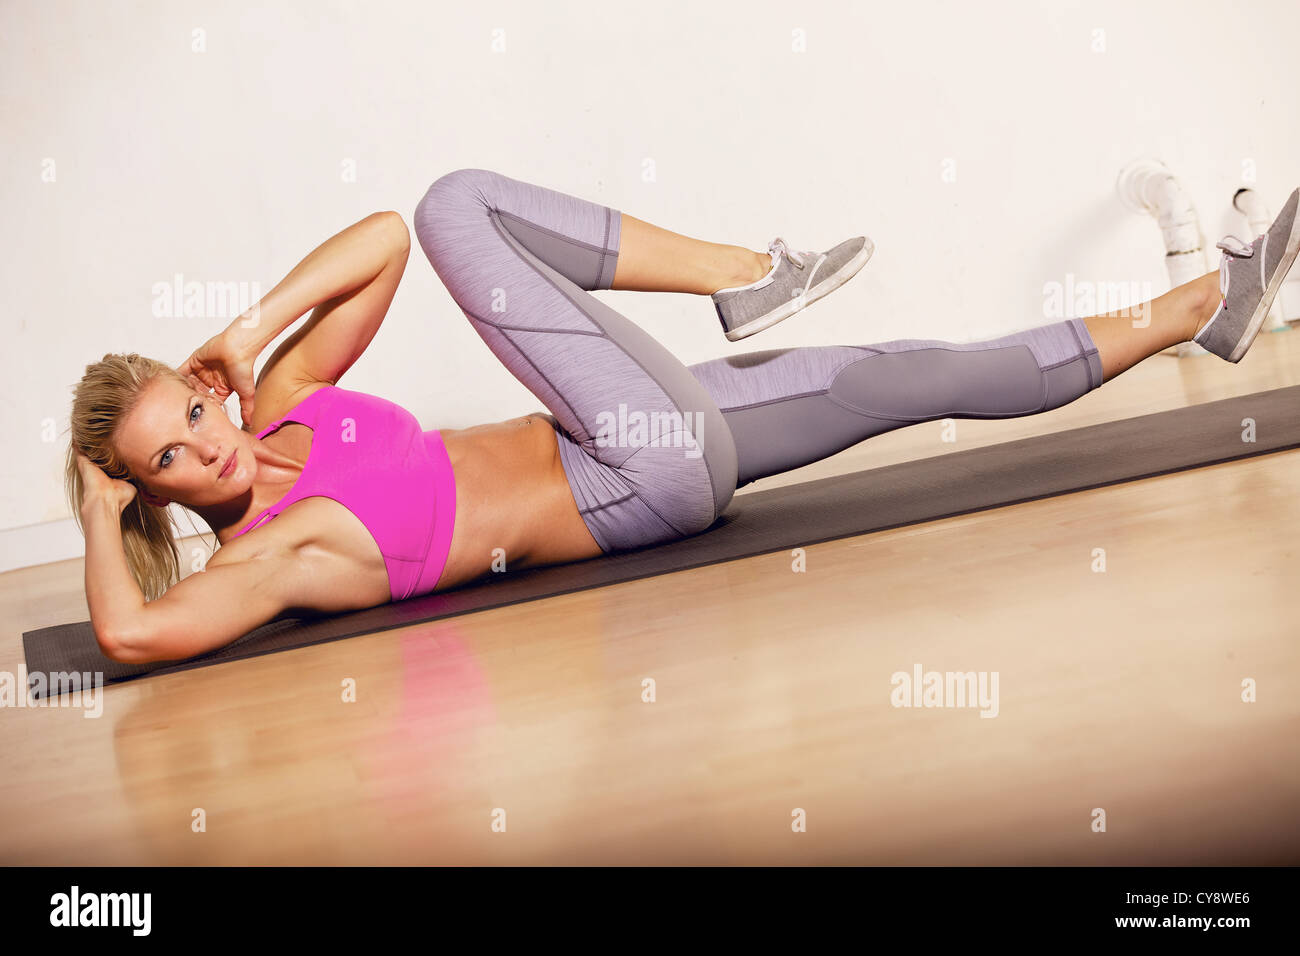 Gorgeous woman in the gym doing her situp exercise - Stock Image